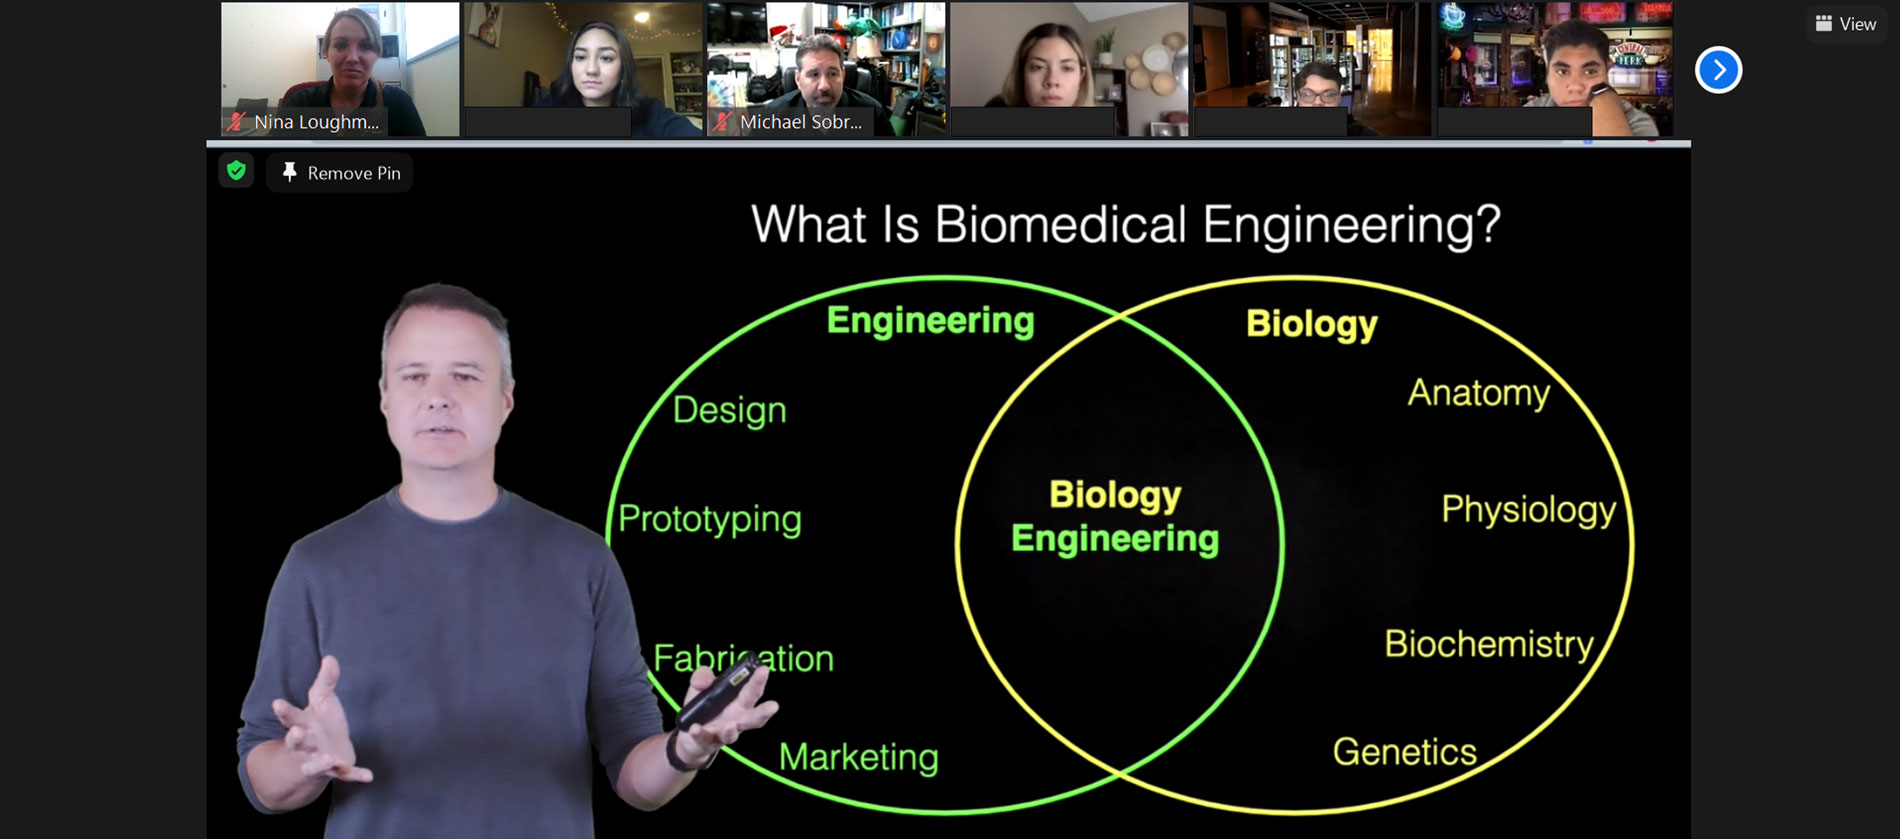 A Zoom screenshot with Associate Professor Jeffrey Kleim and a Venn diagram of engineering and biology concepts that are used in biomedical engineering.